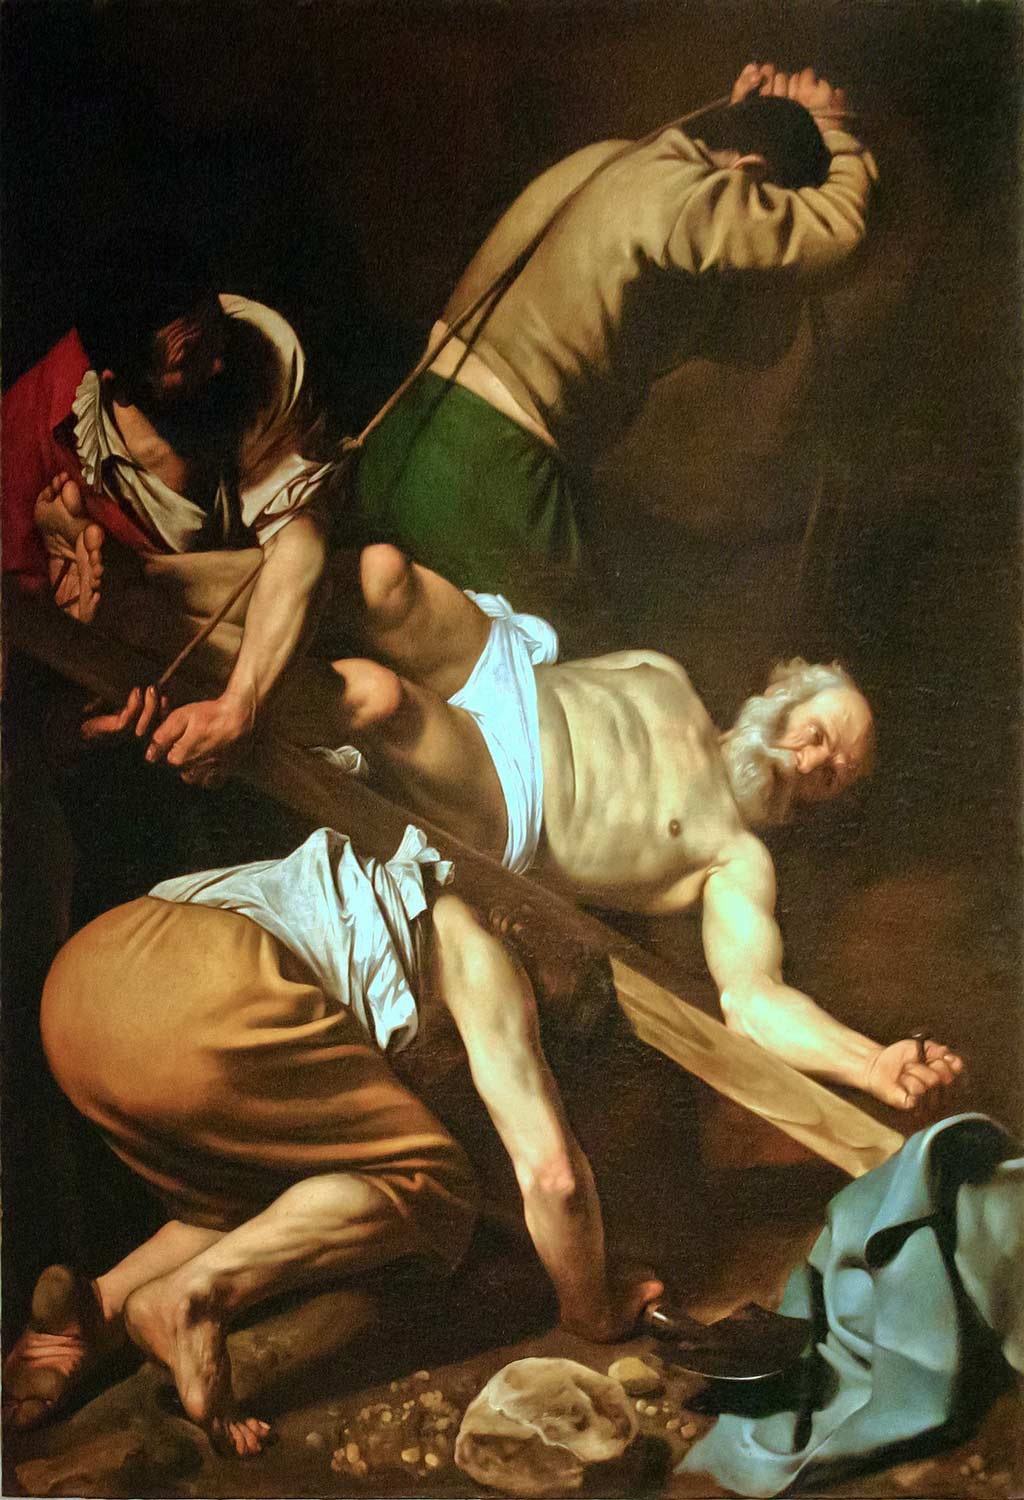 Caravaggio's Crucifixion of St. Peter